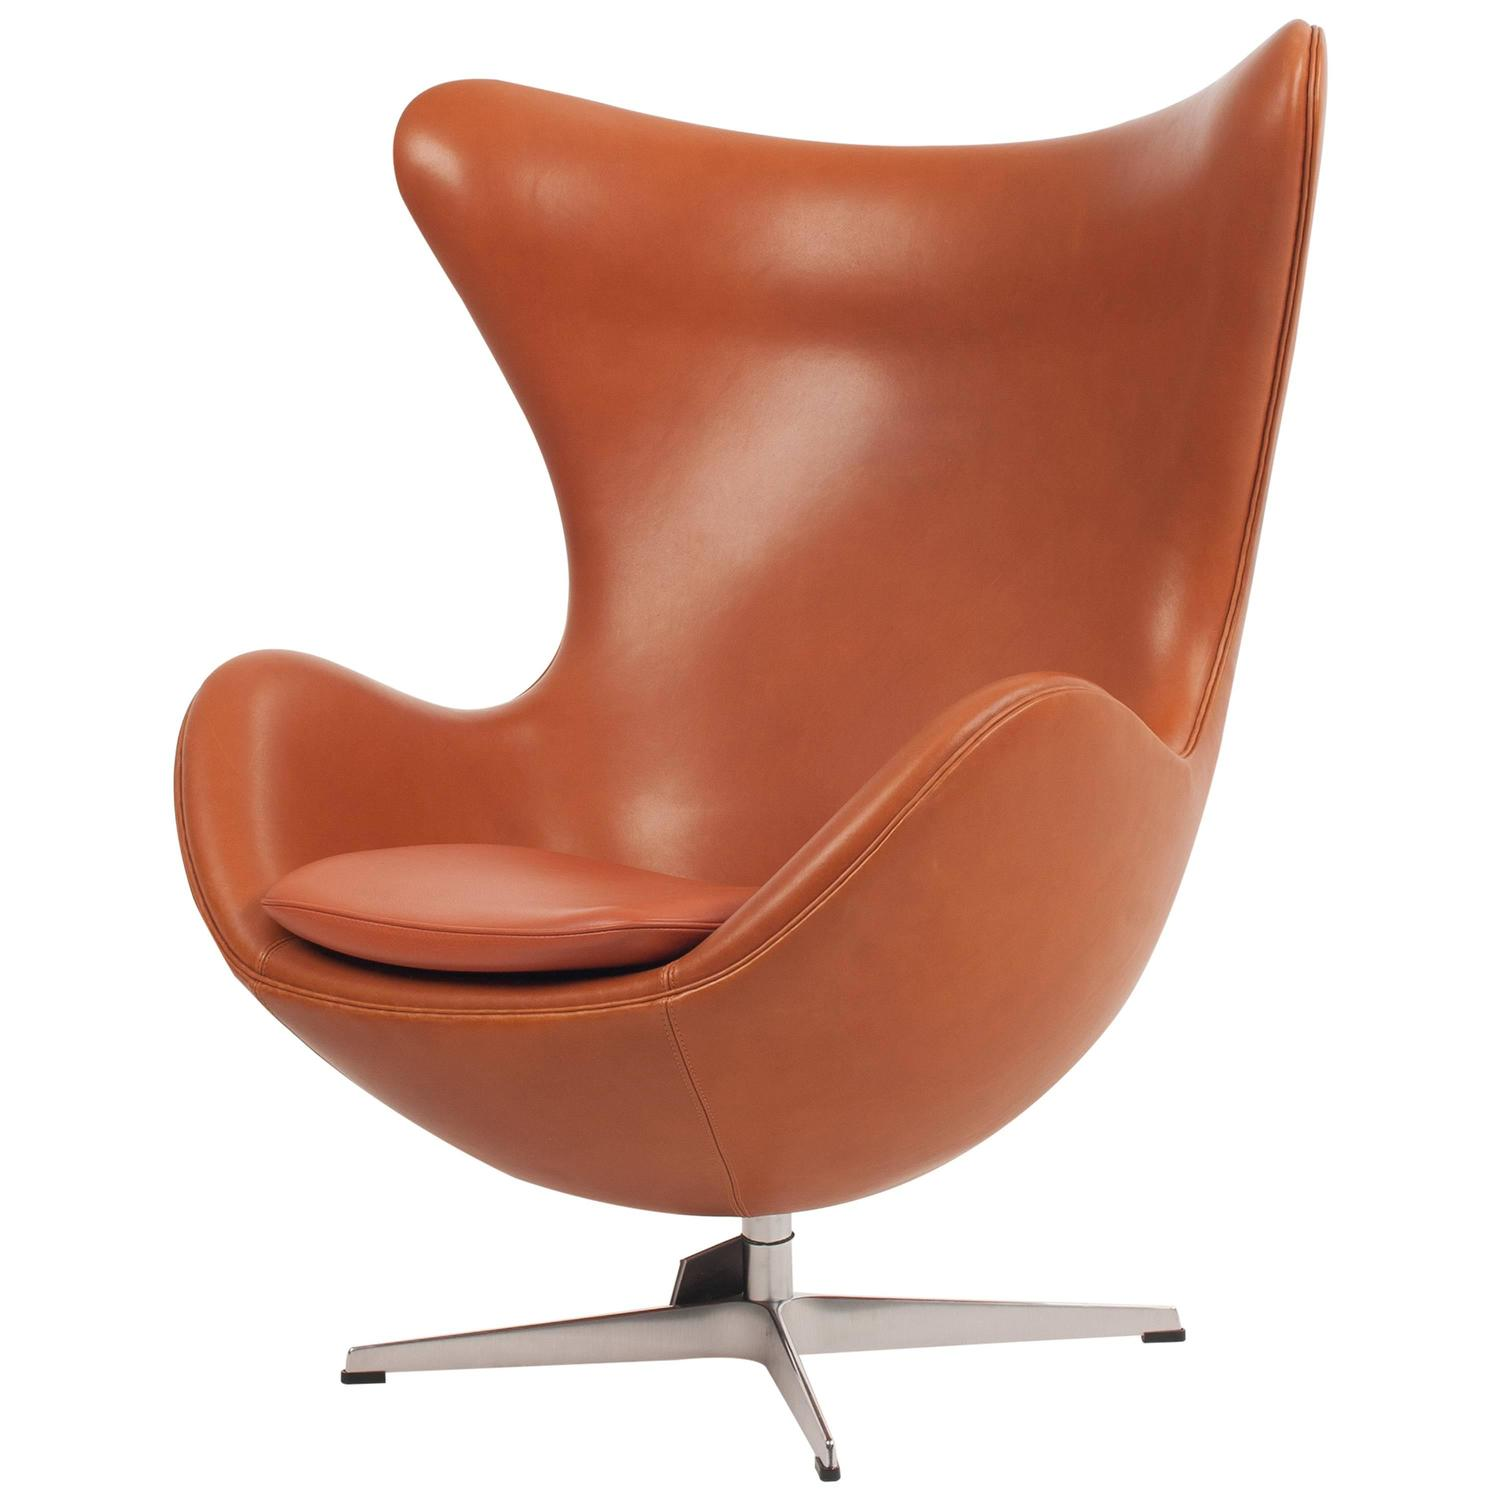 arne jacobsen egg chair in walnut elegance soft leather for fritz hansen at 1stdibs. Black Bedroom Furniture Sets. Home Design Ideas